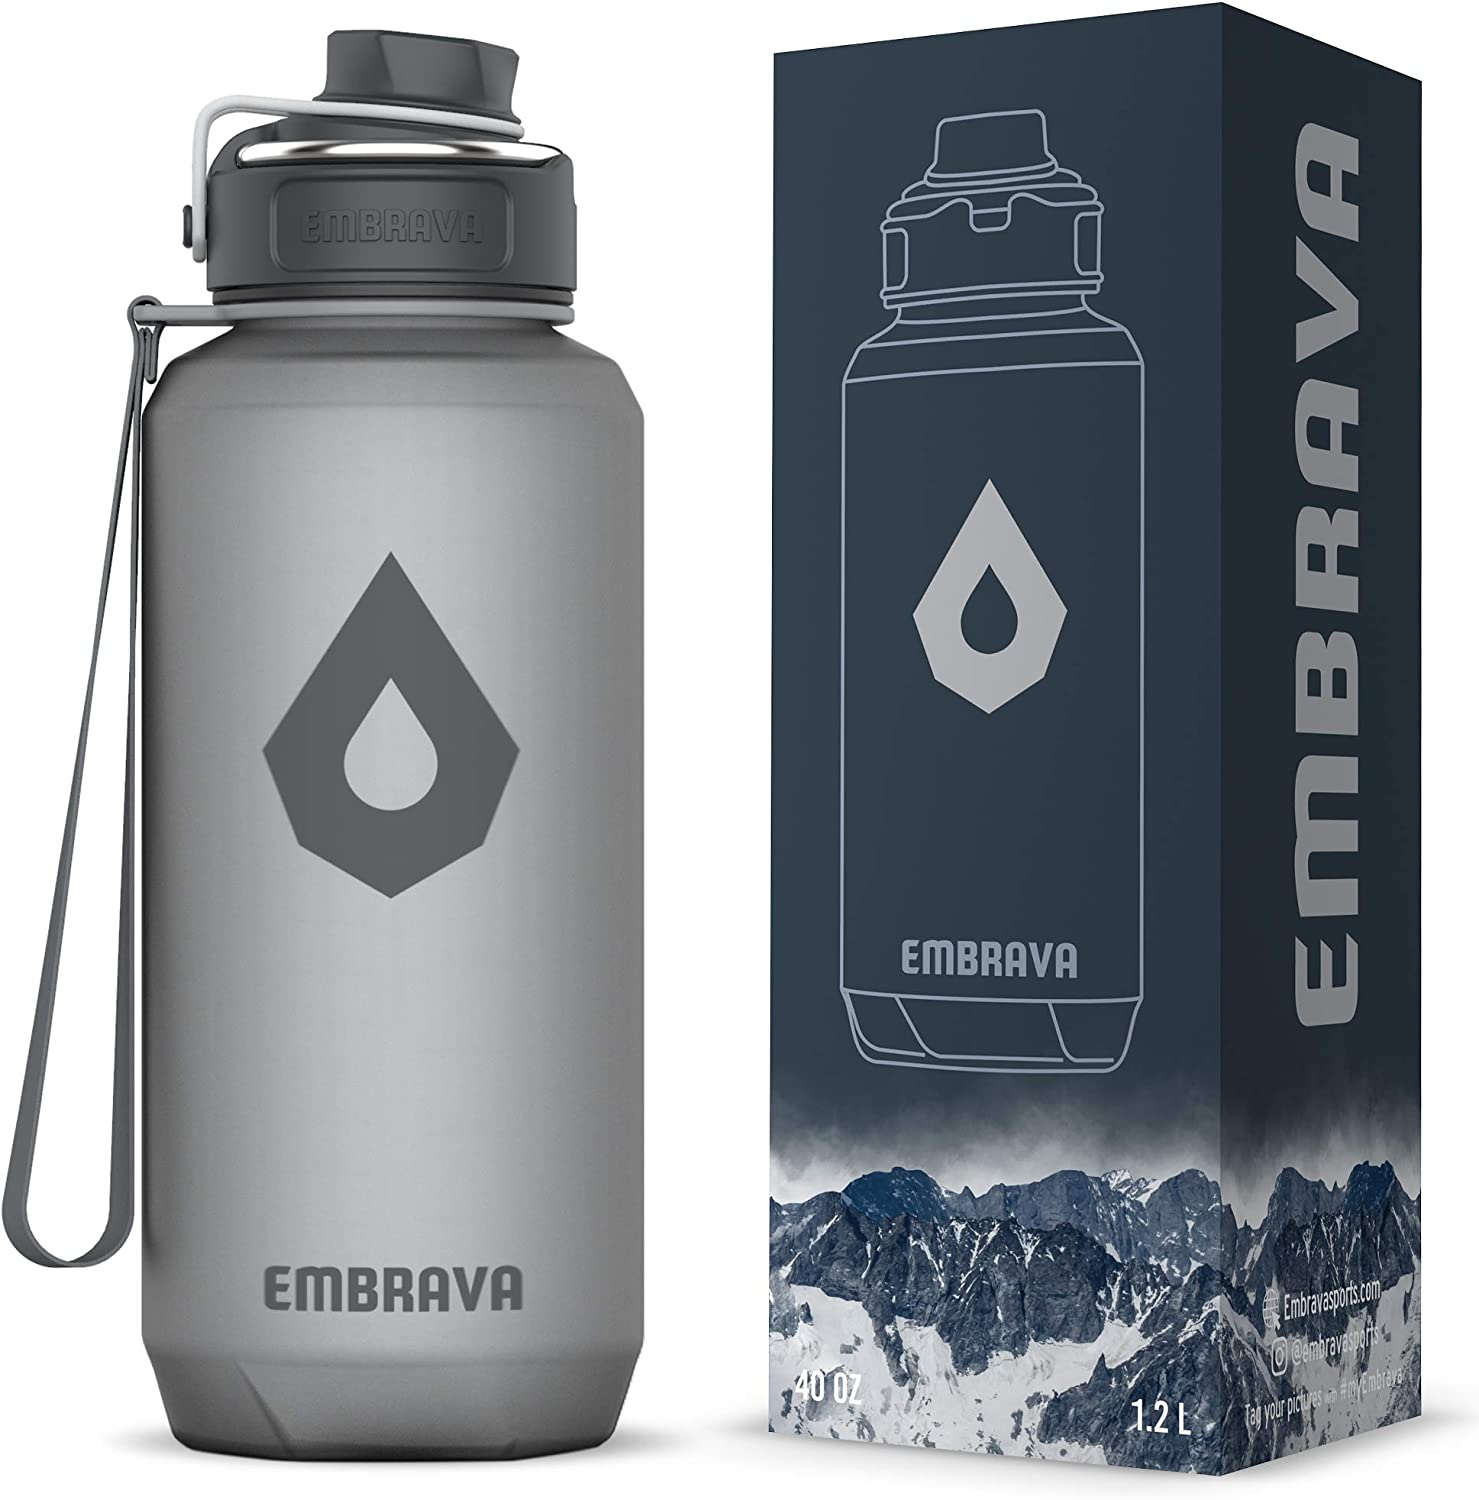 Embrava 40oz Water Bottle - Large with Travel Carry Ring - Wide Leak Proof Drink Spout | Heavy-Duty, BPA & BPS Free Tritan Plastic | Sports, Camping, Gym, Fitness, Outdoor